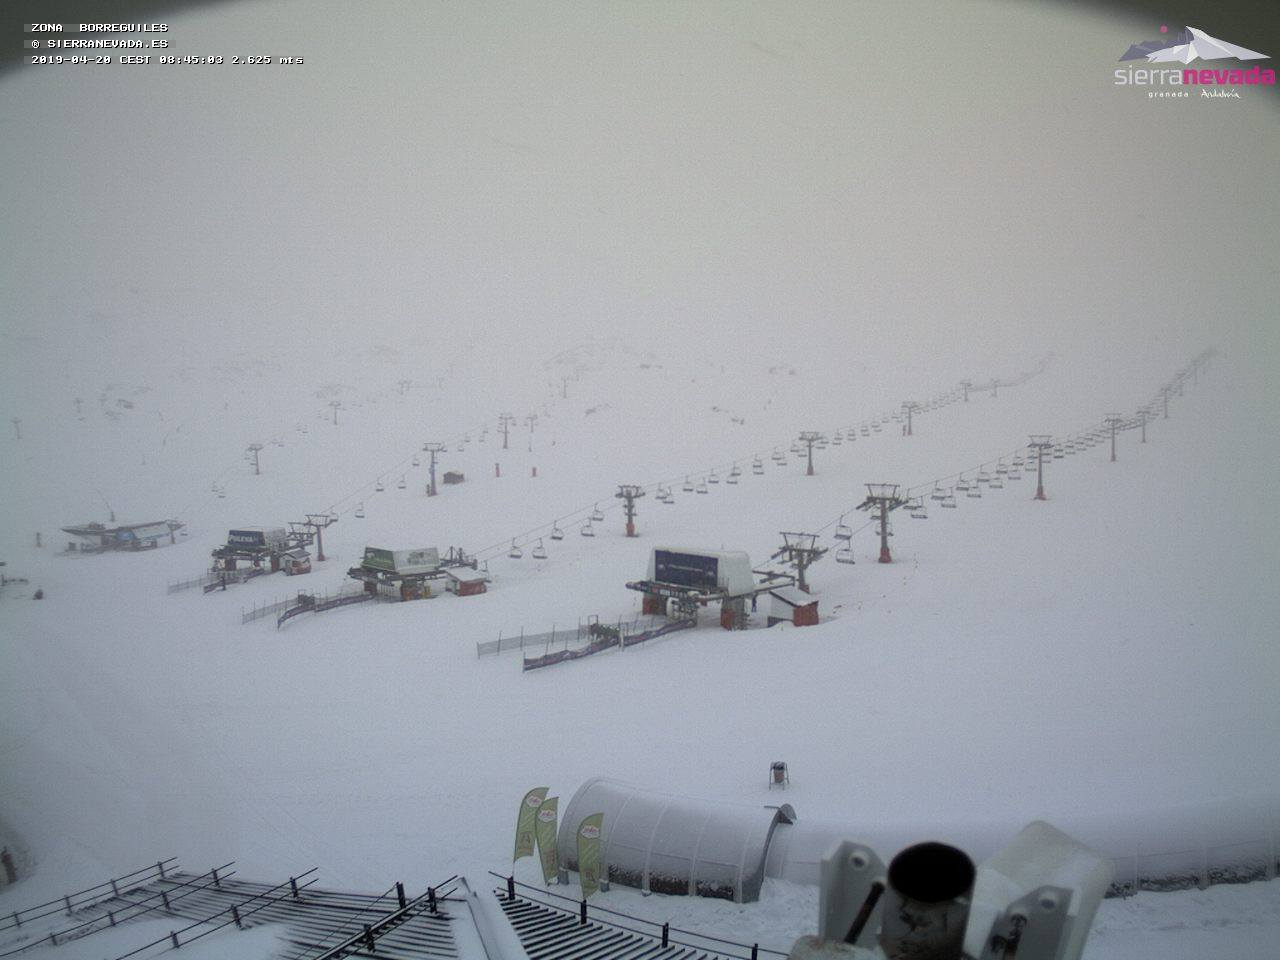 Snow today at Europe's most southerly major ski centre., Sierra Nevada